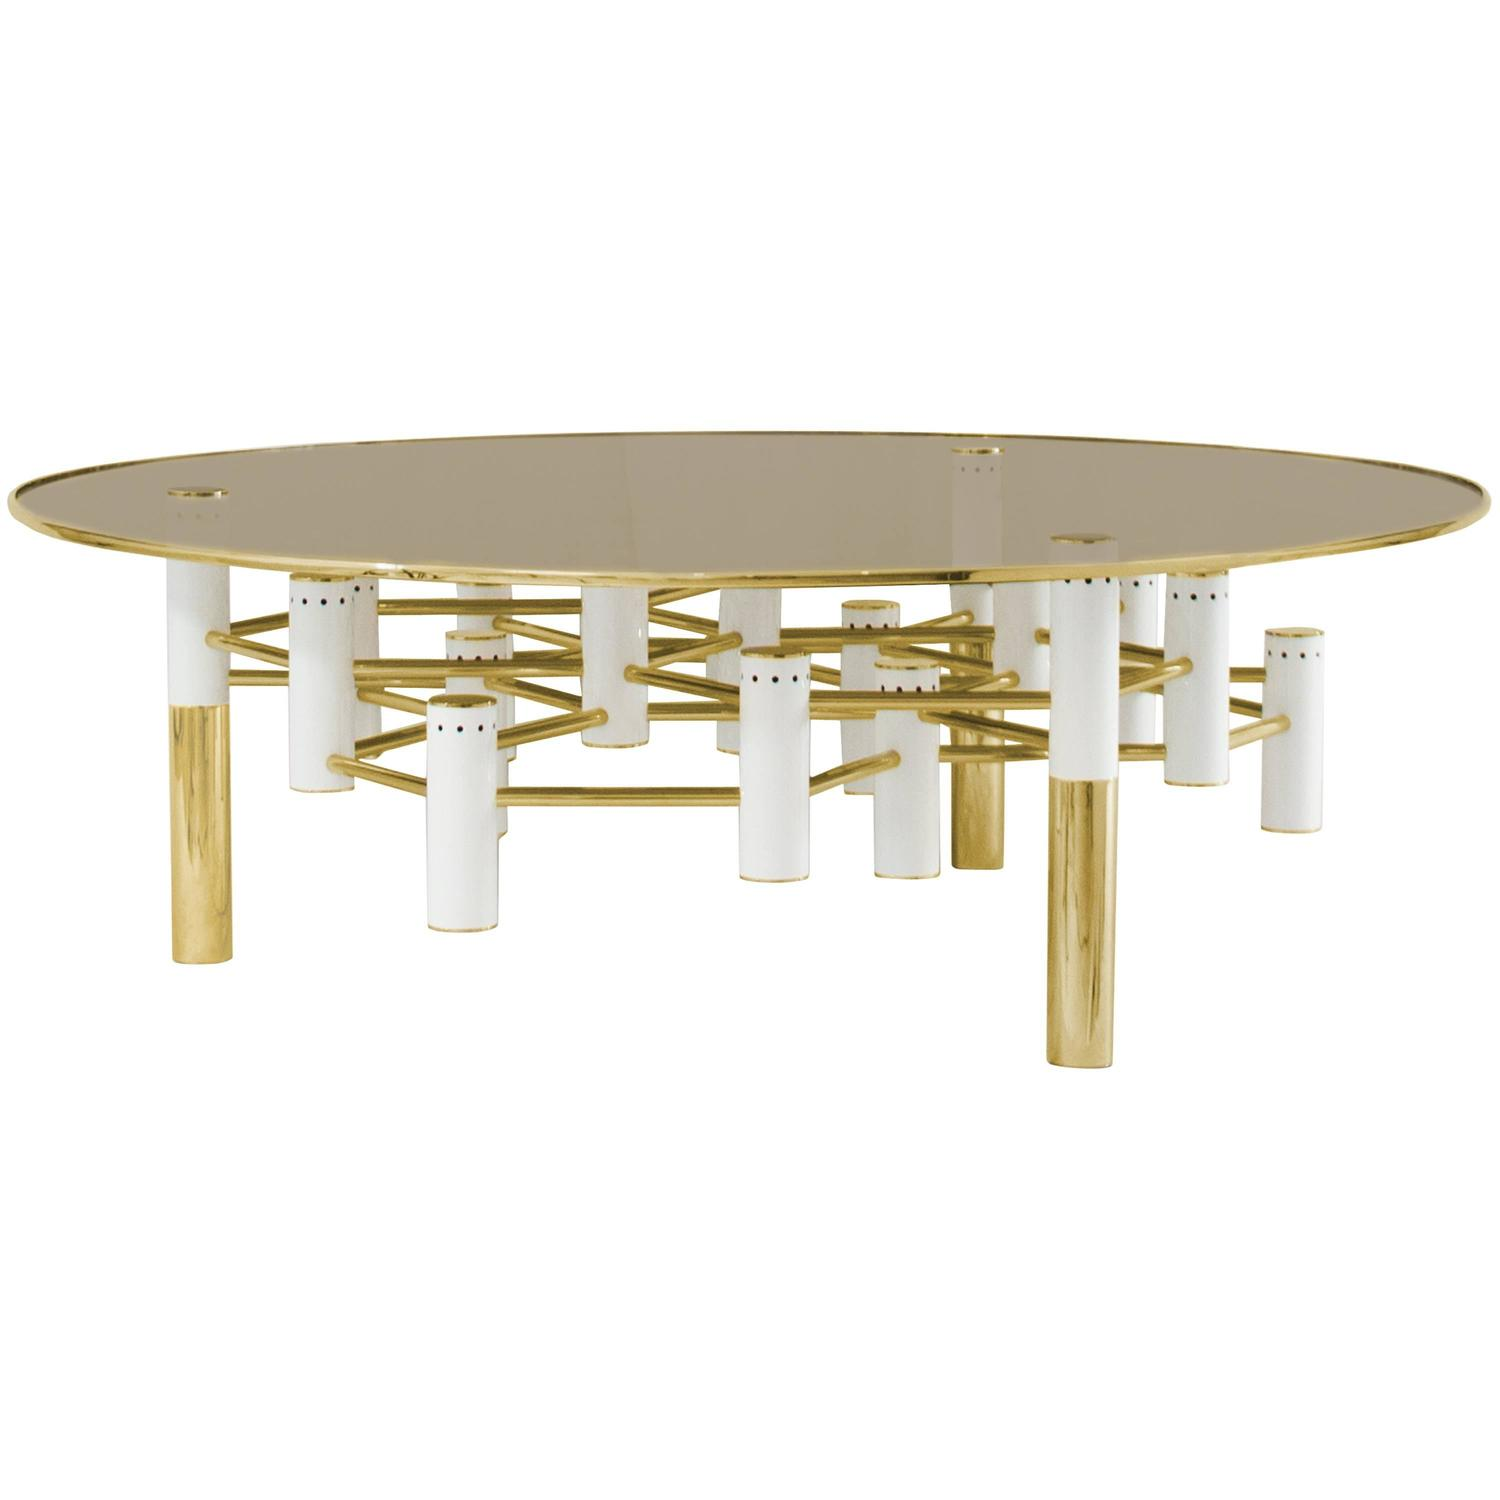 Image Result For Modern Refinement Round Coffee Table